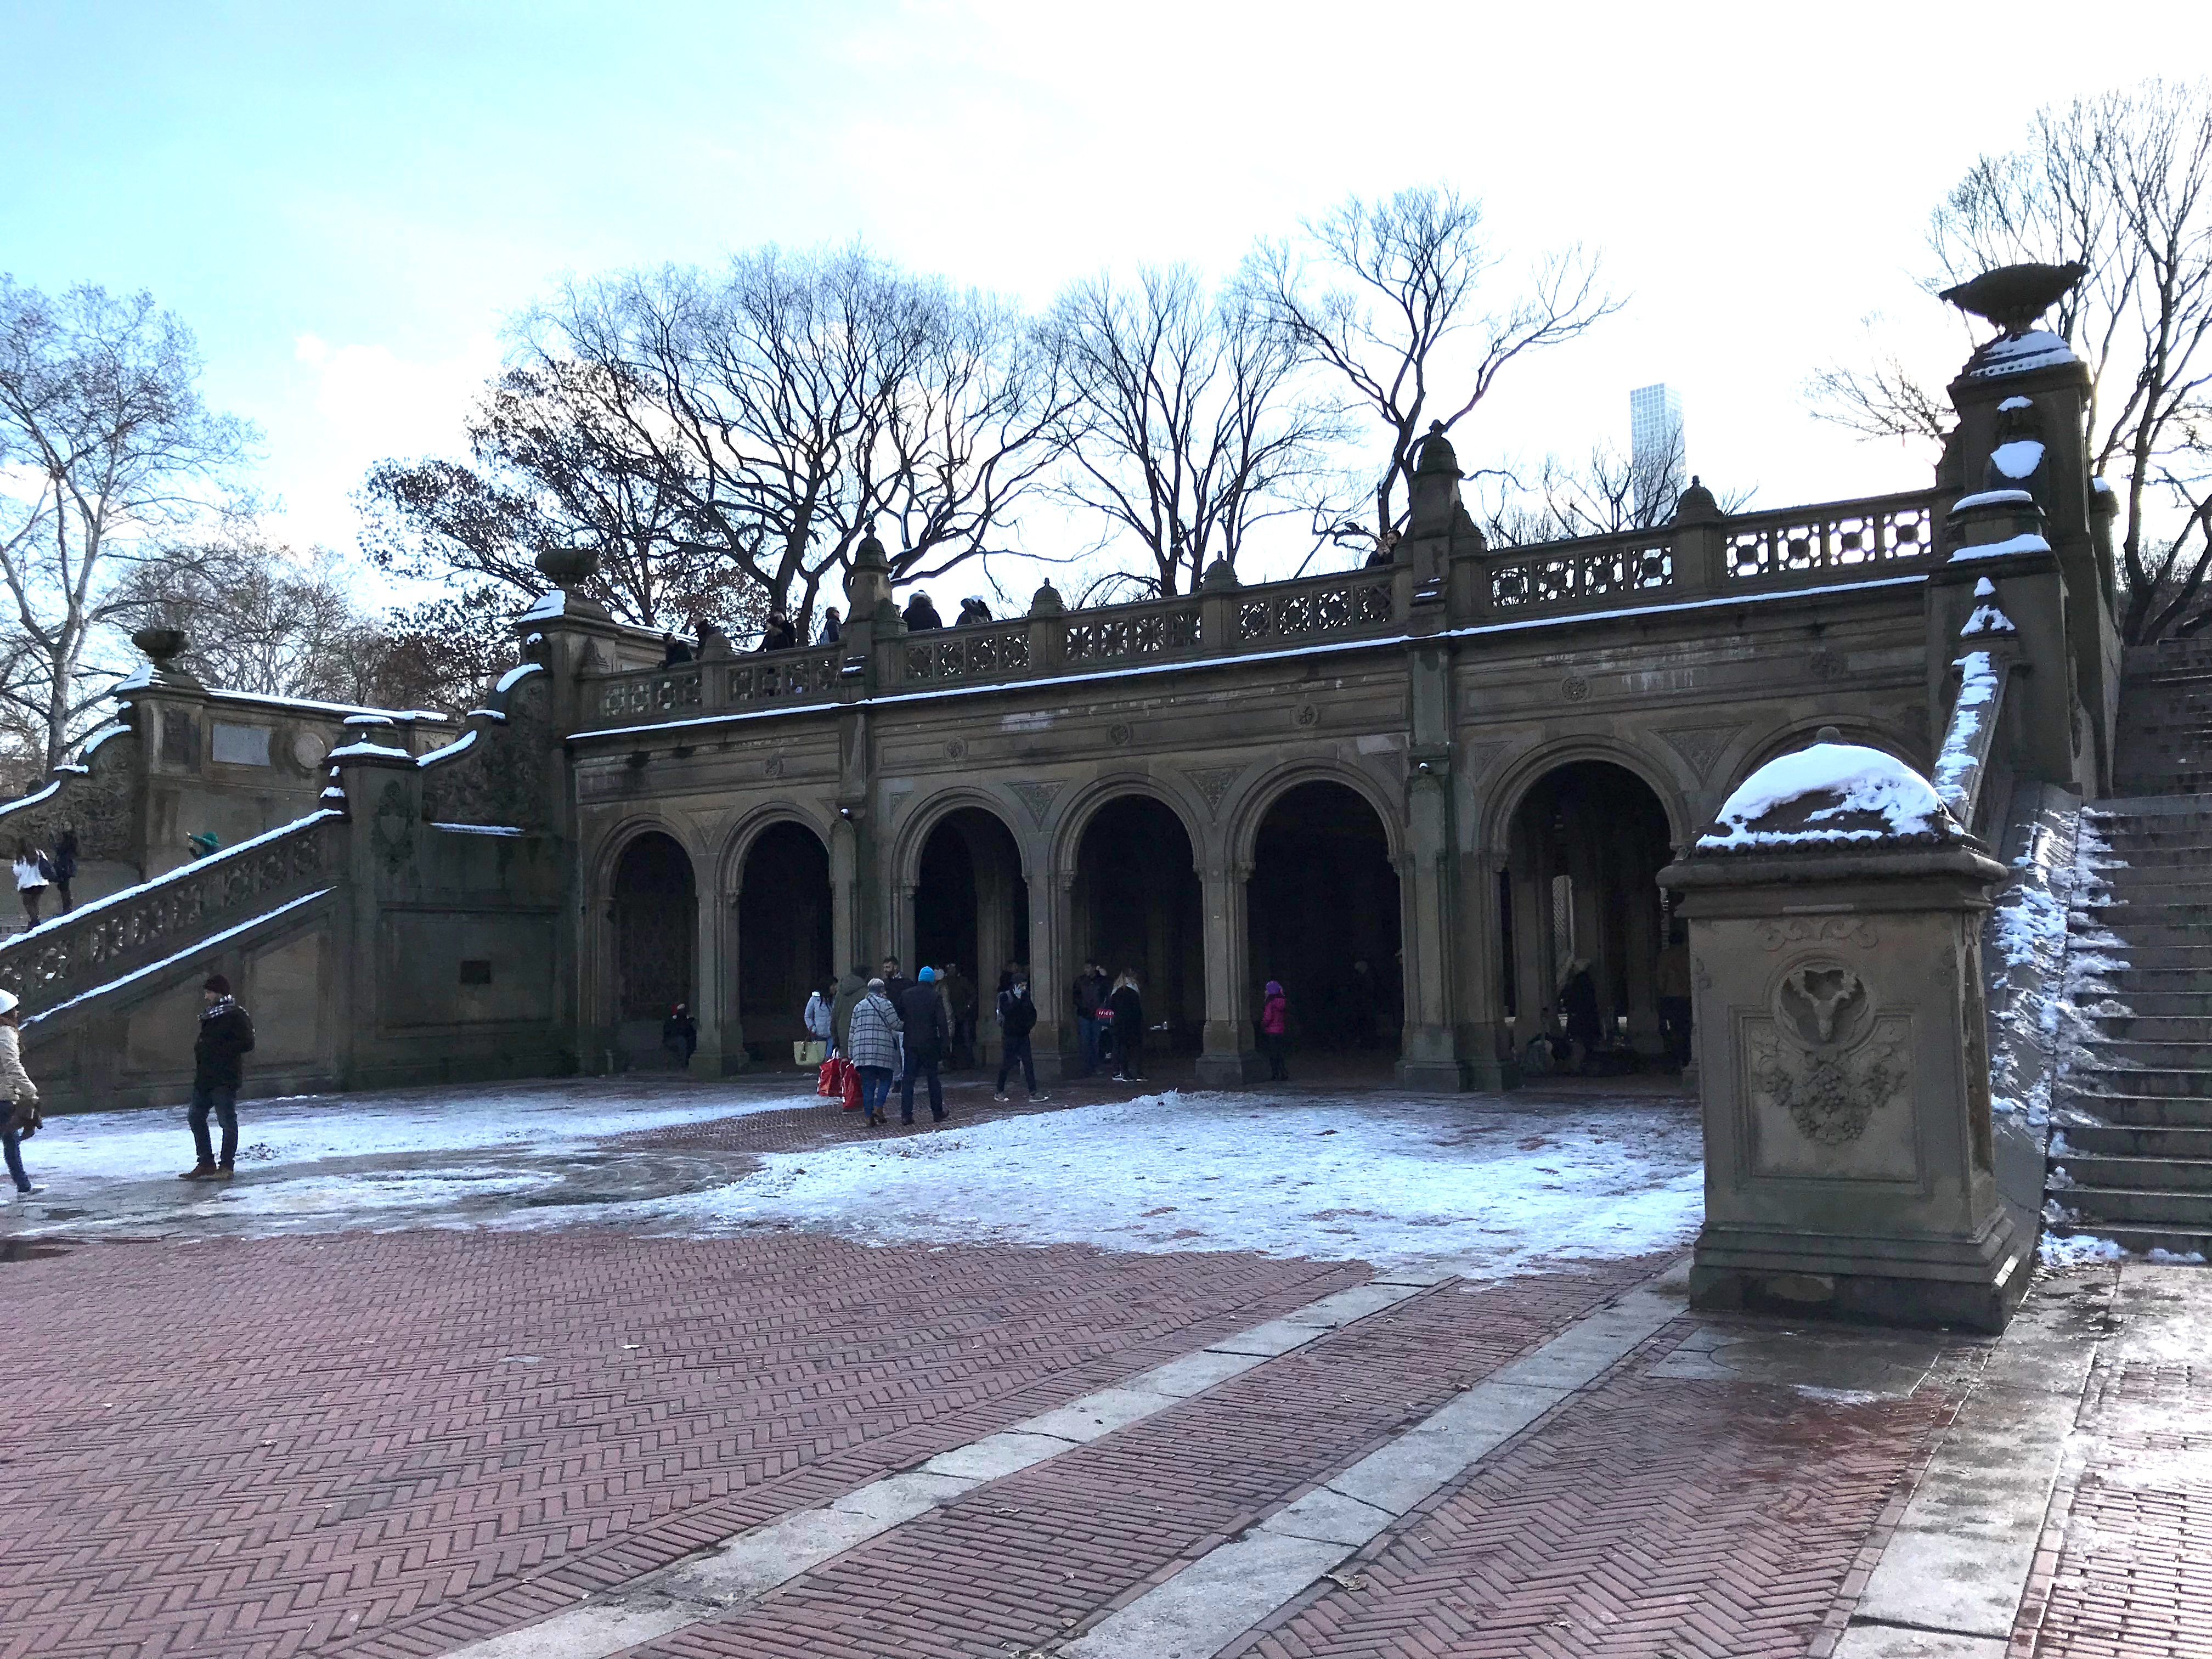 The Bethesda Terrace in Central Park in New York City. (DCNF/Ethan Barton)